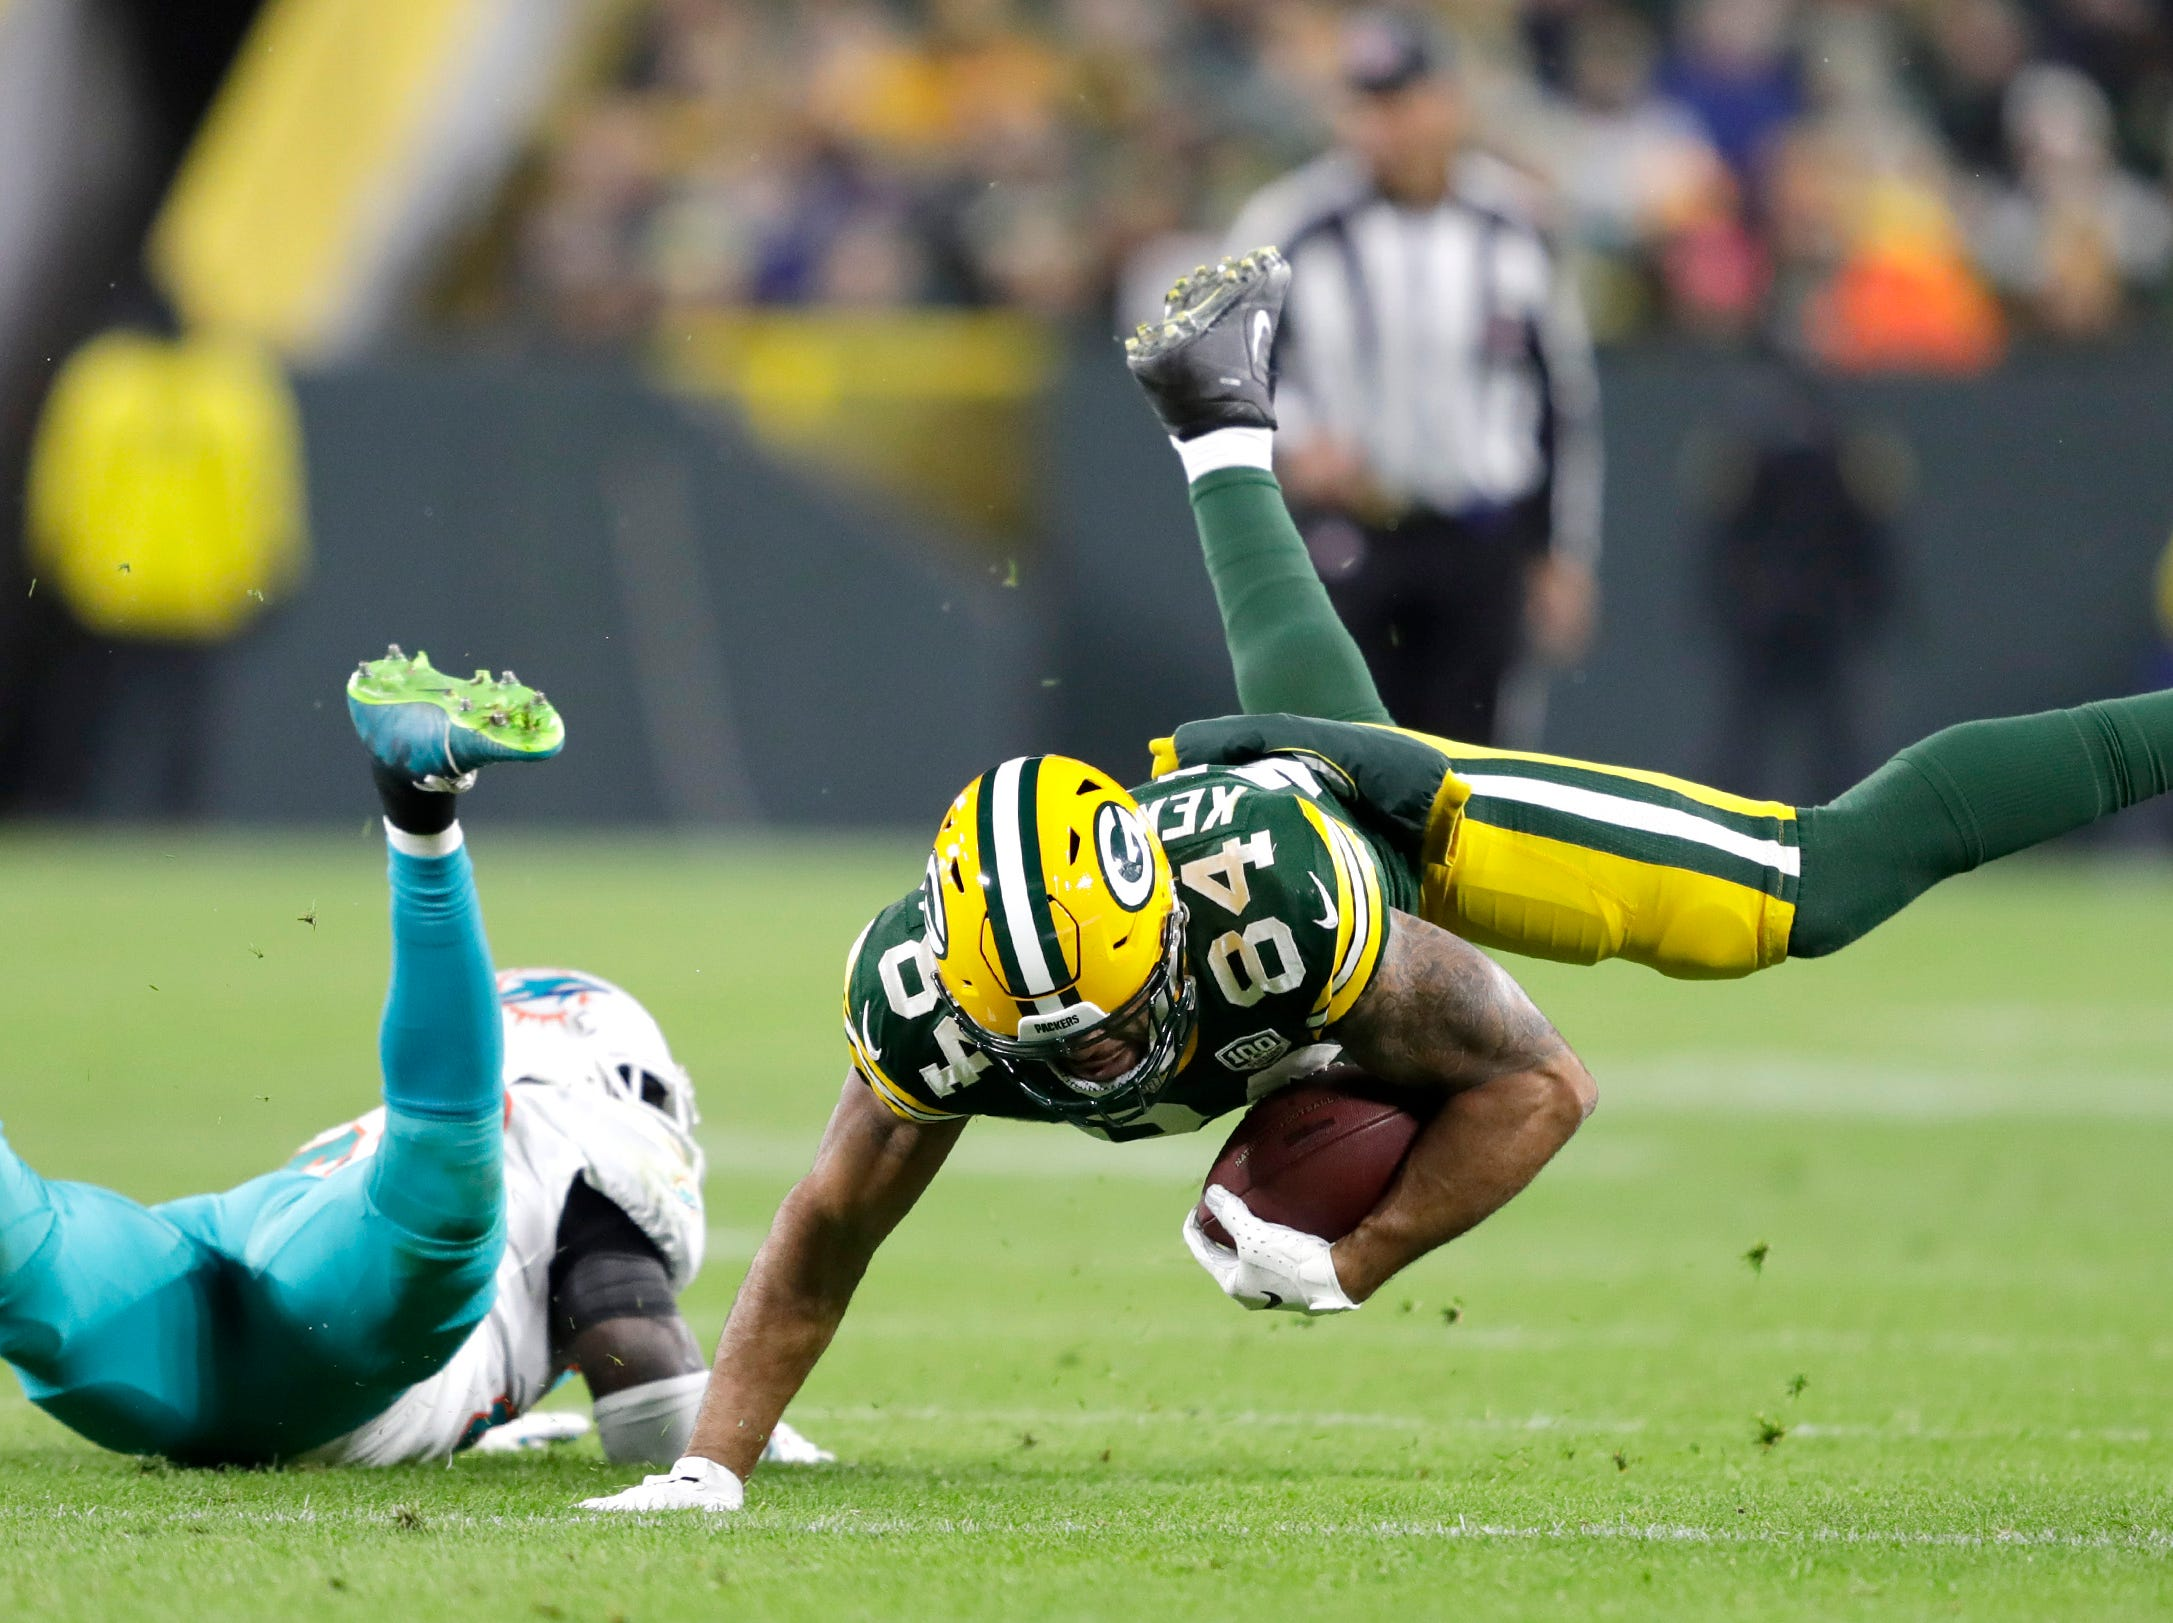 Green Bay Packers tight end Lance Kendricks makes a fourth quarter reception against the Miami Dolphins during their football game on Sunday, November 11, 2018, at Lambeau Field in Green Bay, Wis. 